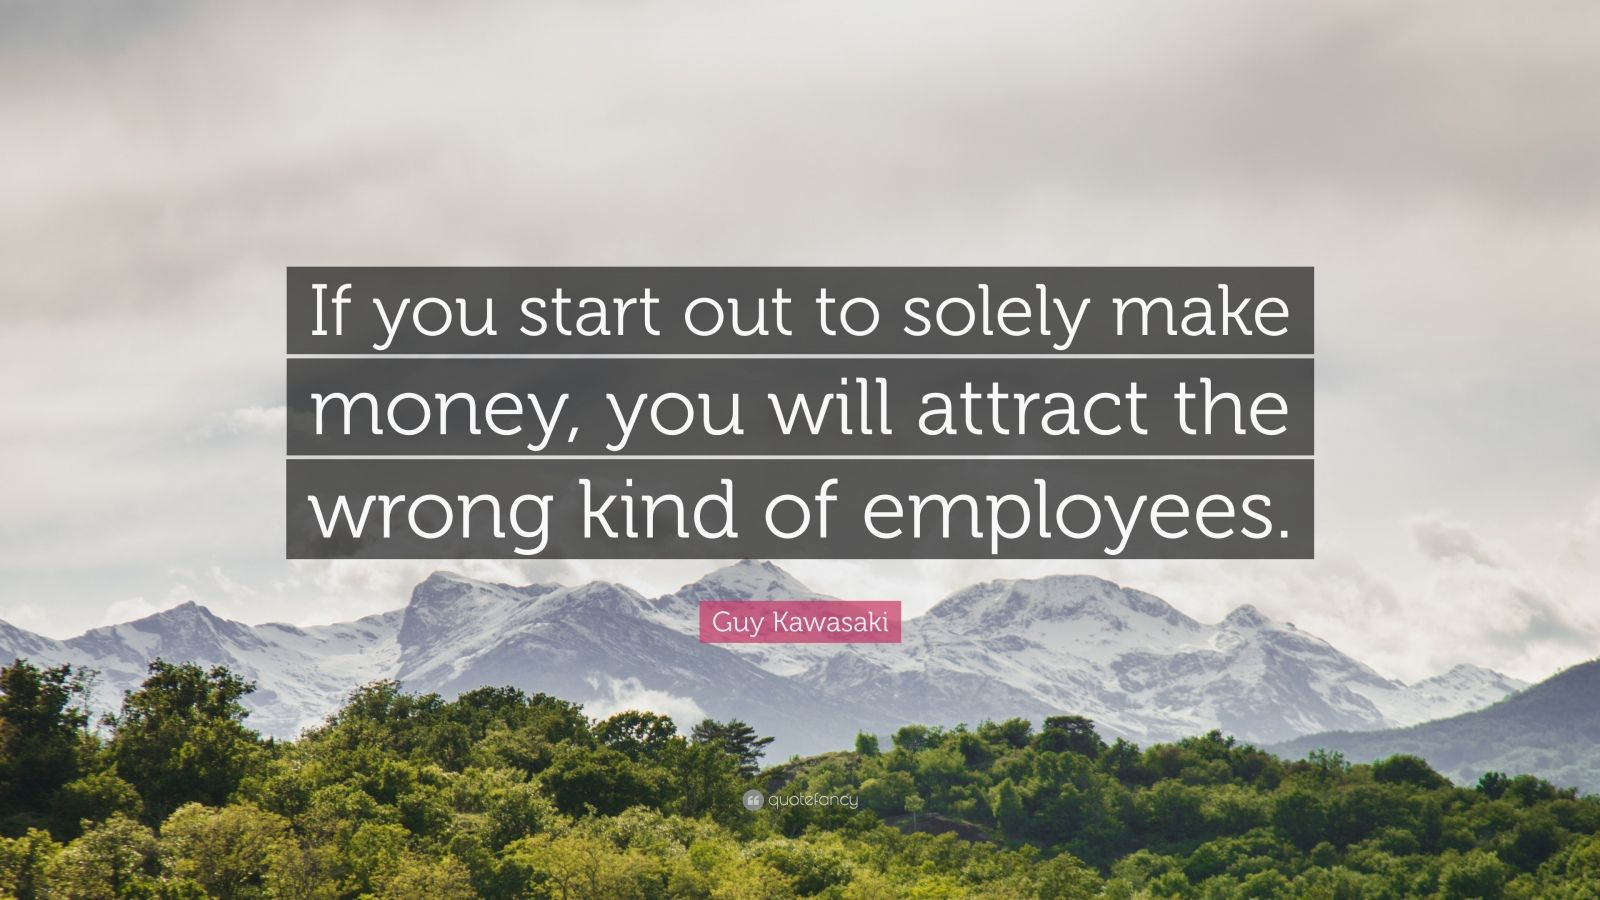 """Guy Kawasaki Quote: """"If you start out to solely make money, you will attract the wrong kind of employees."""""""